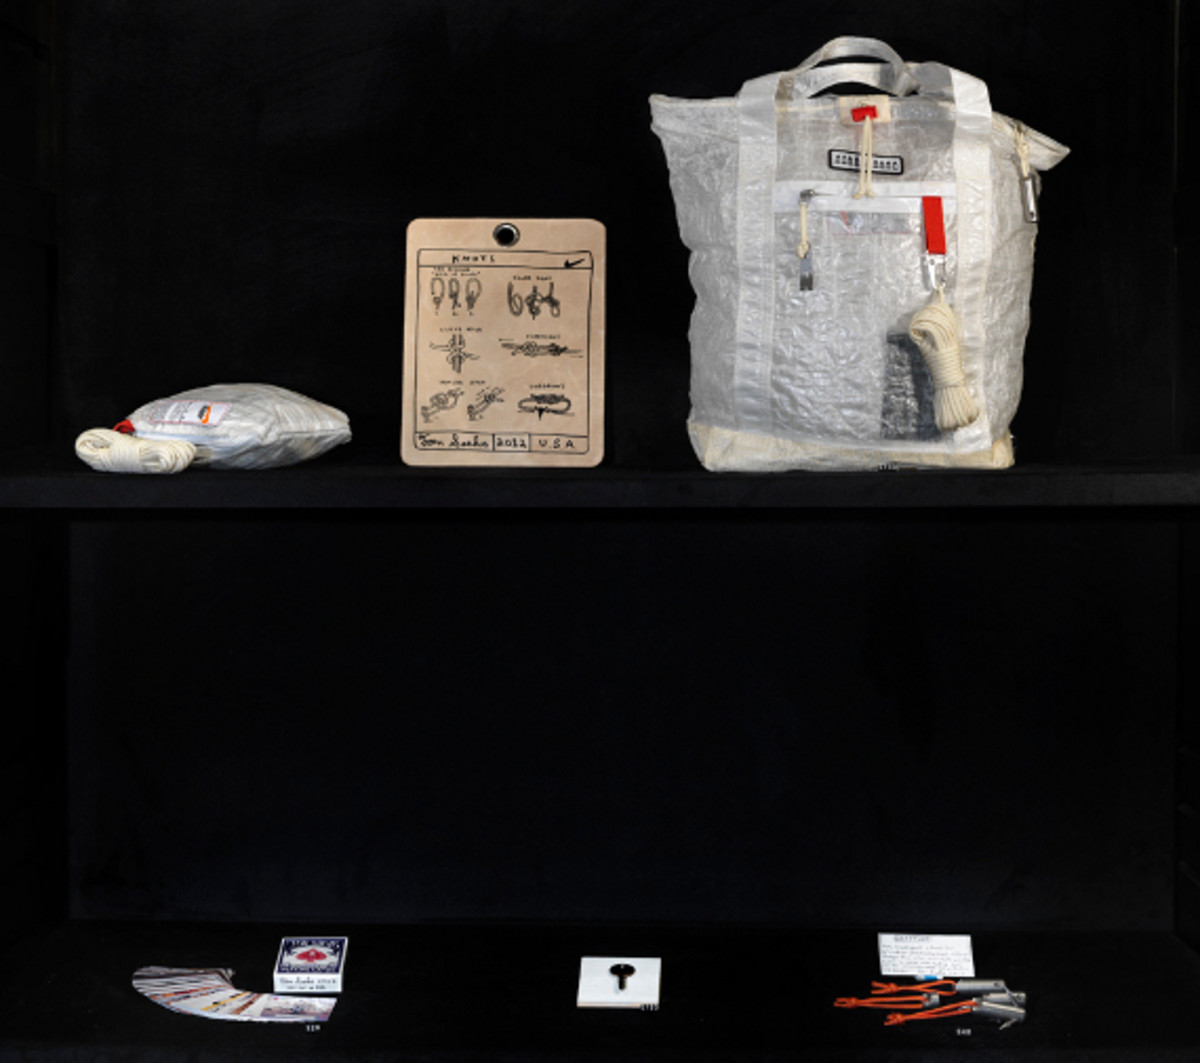 nike-tom-sachs-nikecraft-collection-launch-event-18